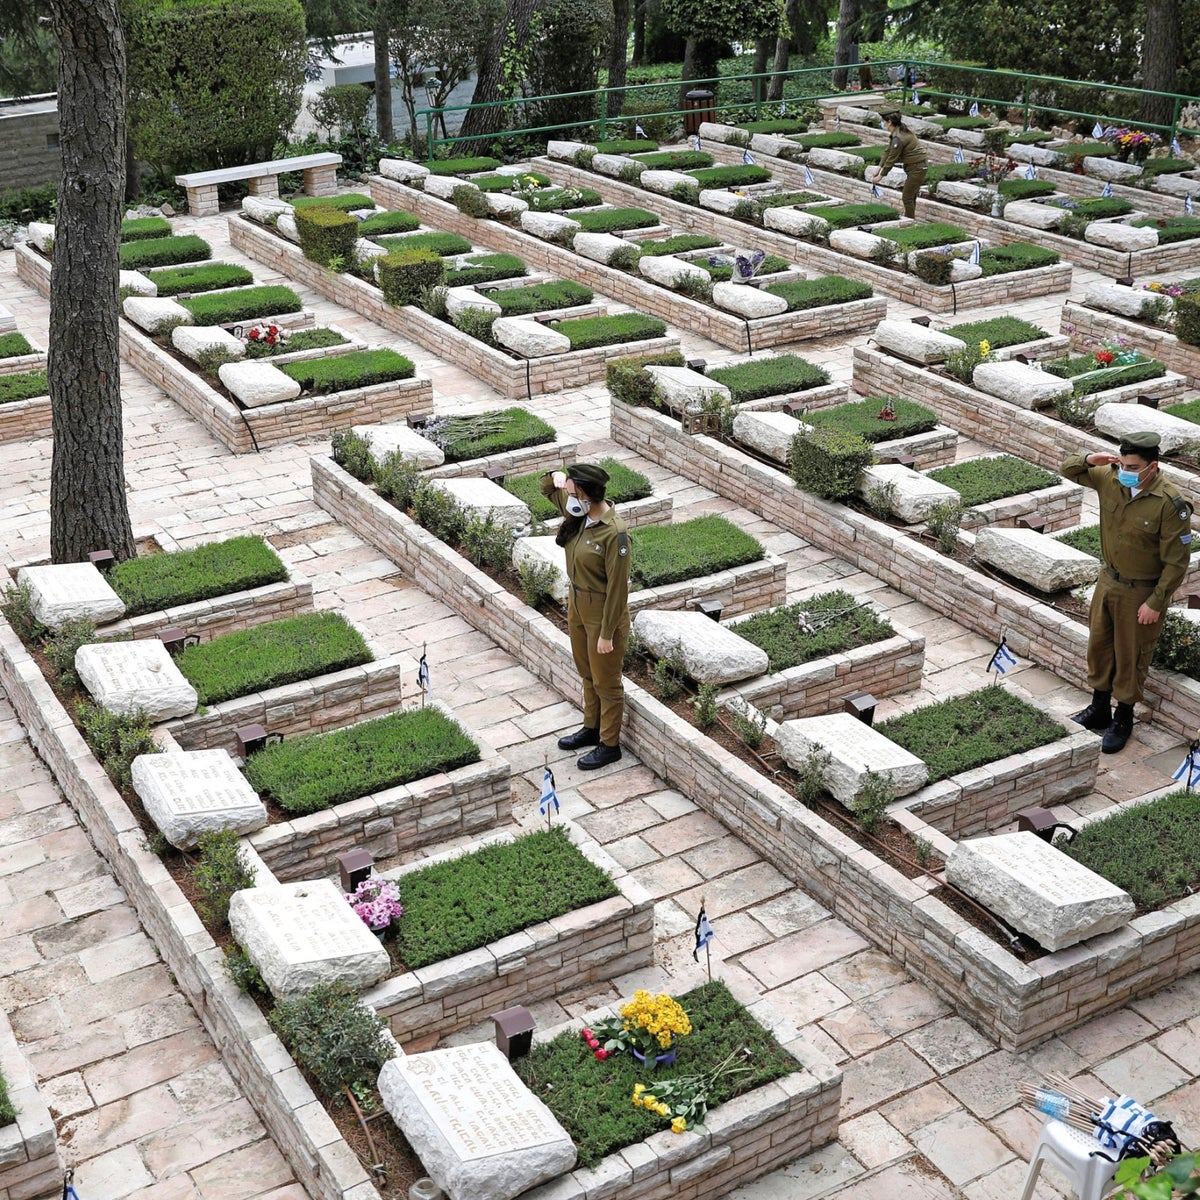 A military cemetery in Jerusalem this week, before Memorial Day.